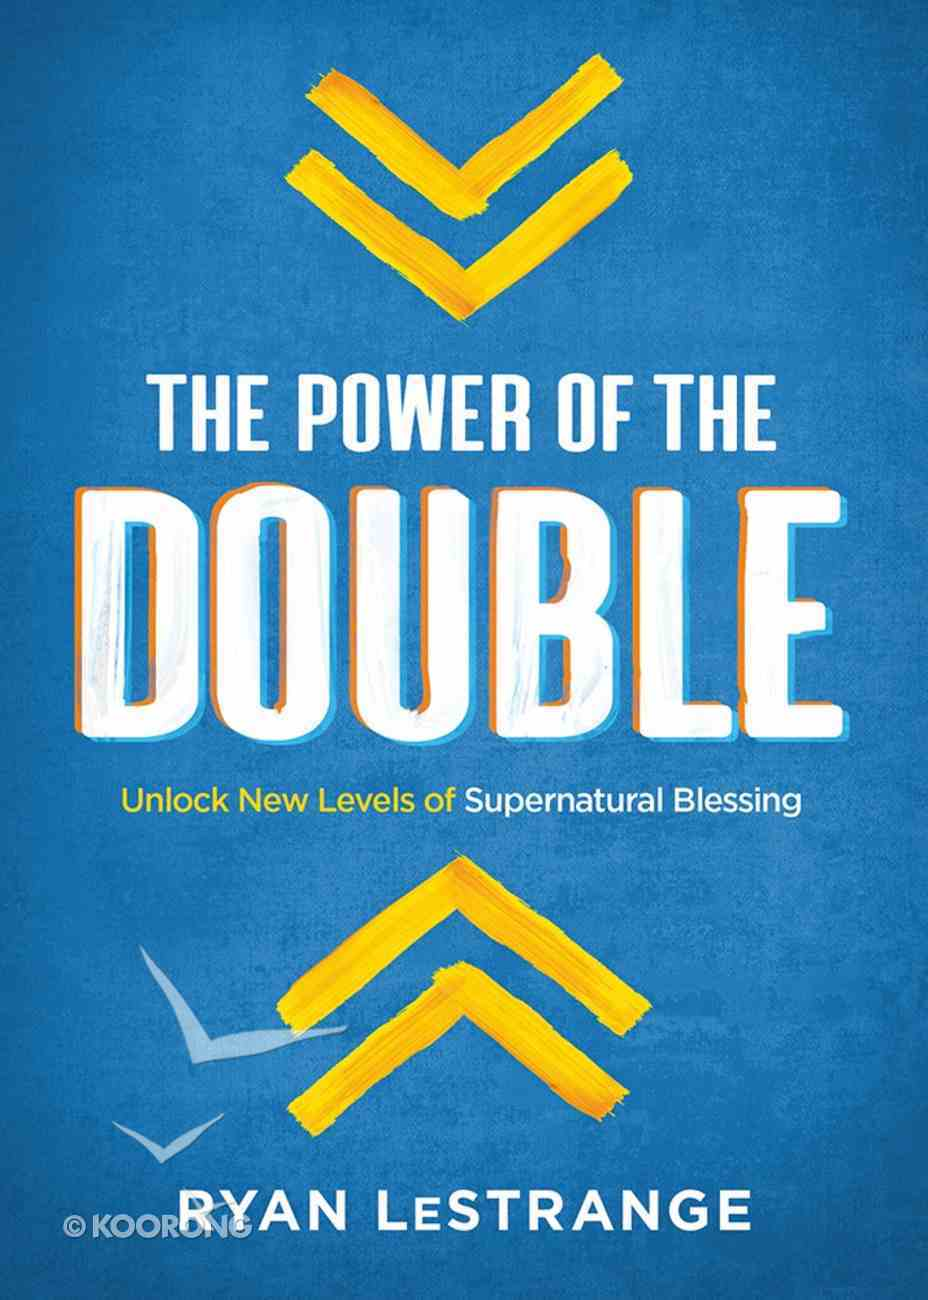 The Power of the Double: Unlock New Levels of Supernatural Blessing Paperback